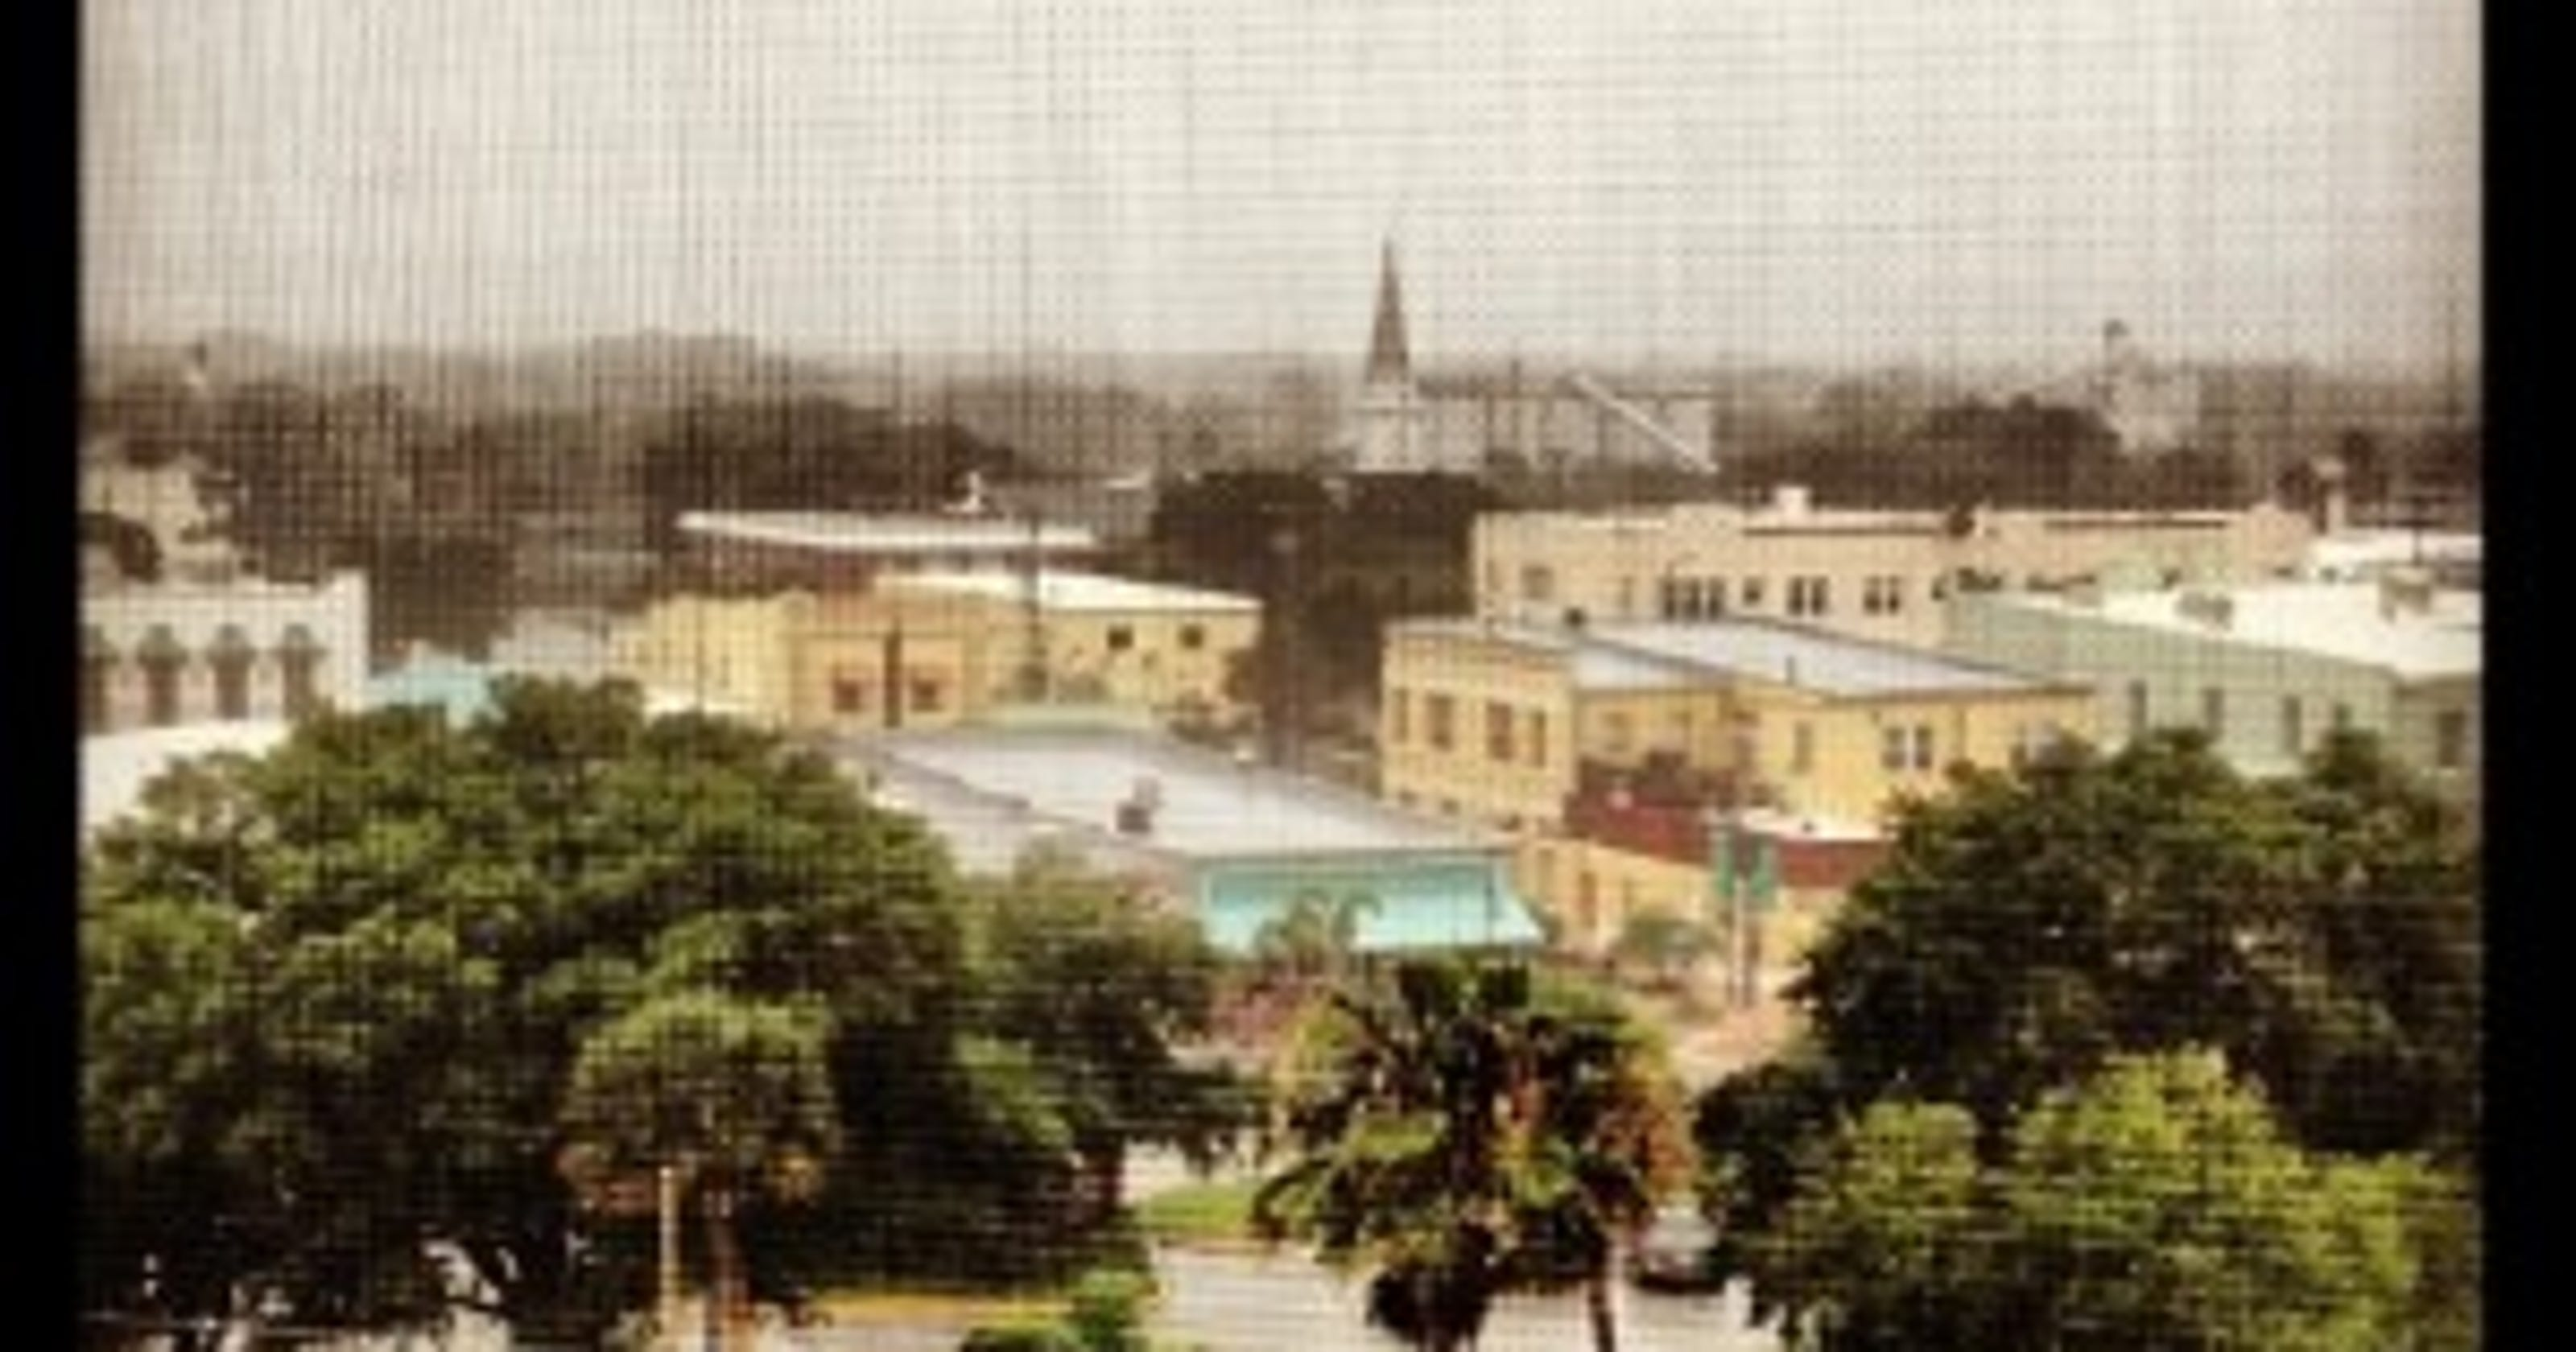 How to Adult: Why I chose to live in Titusville